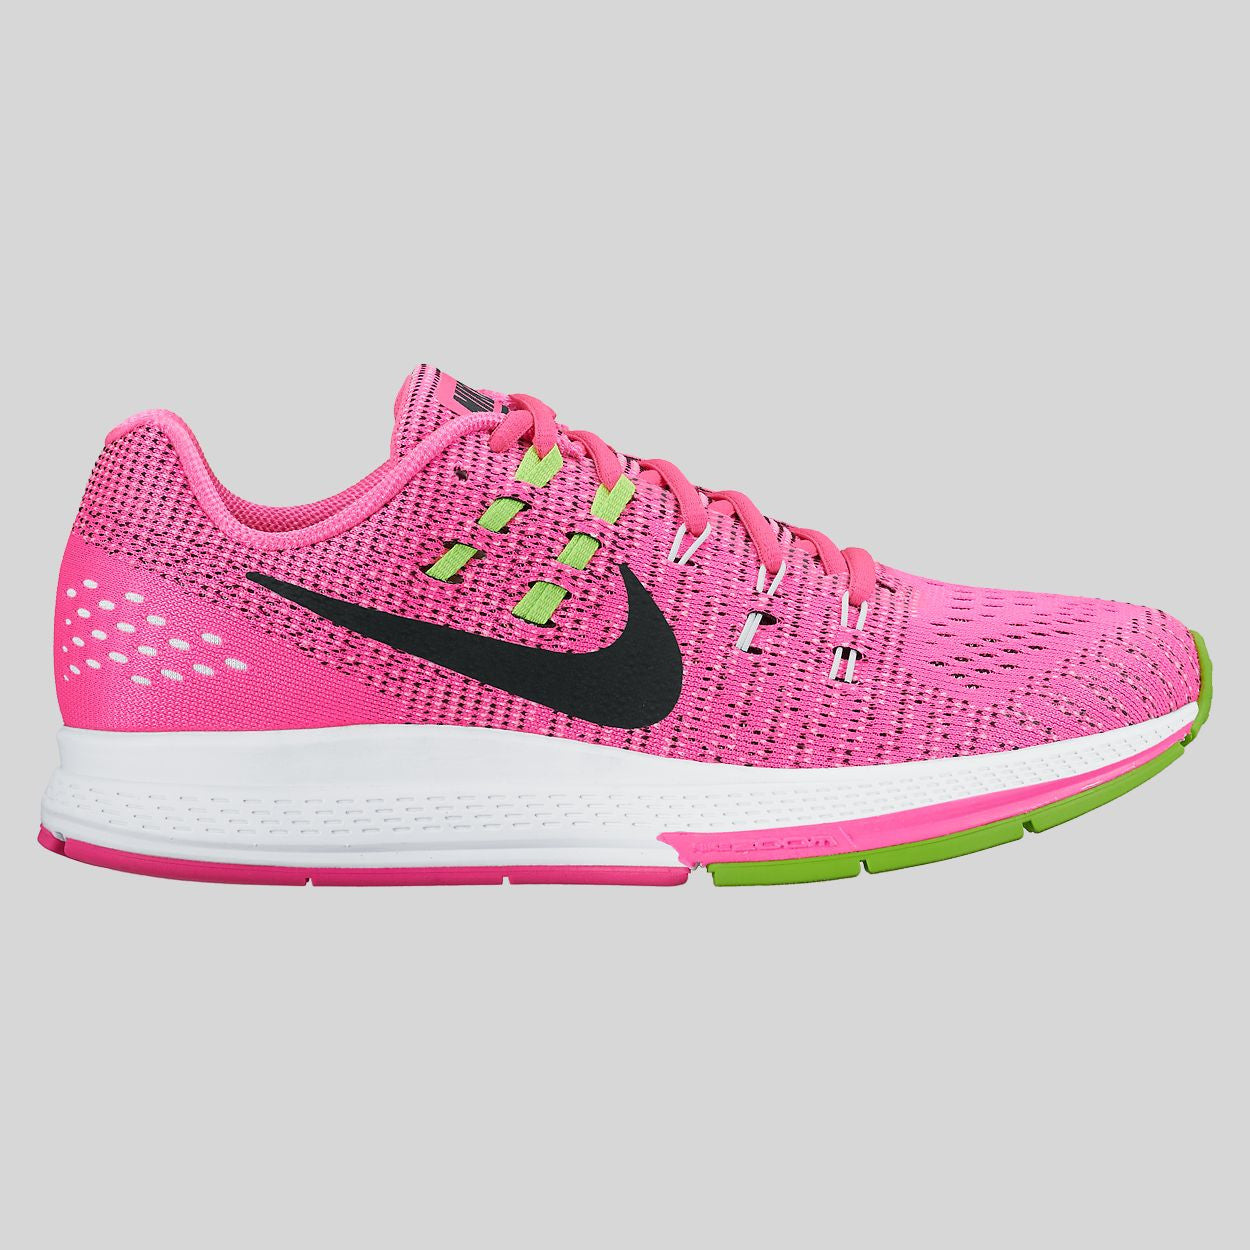 Nike Wmns Air Zoom Structure 19 Pink Blast Black Electric Green (806584-600)